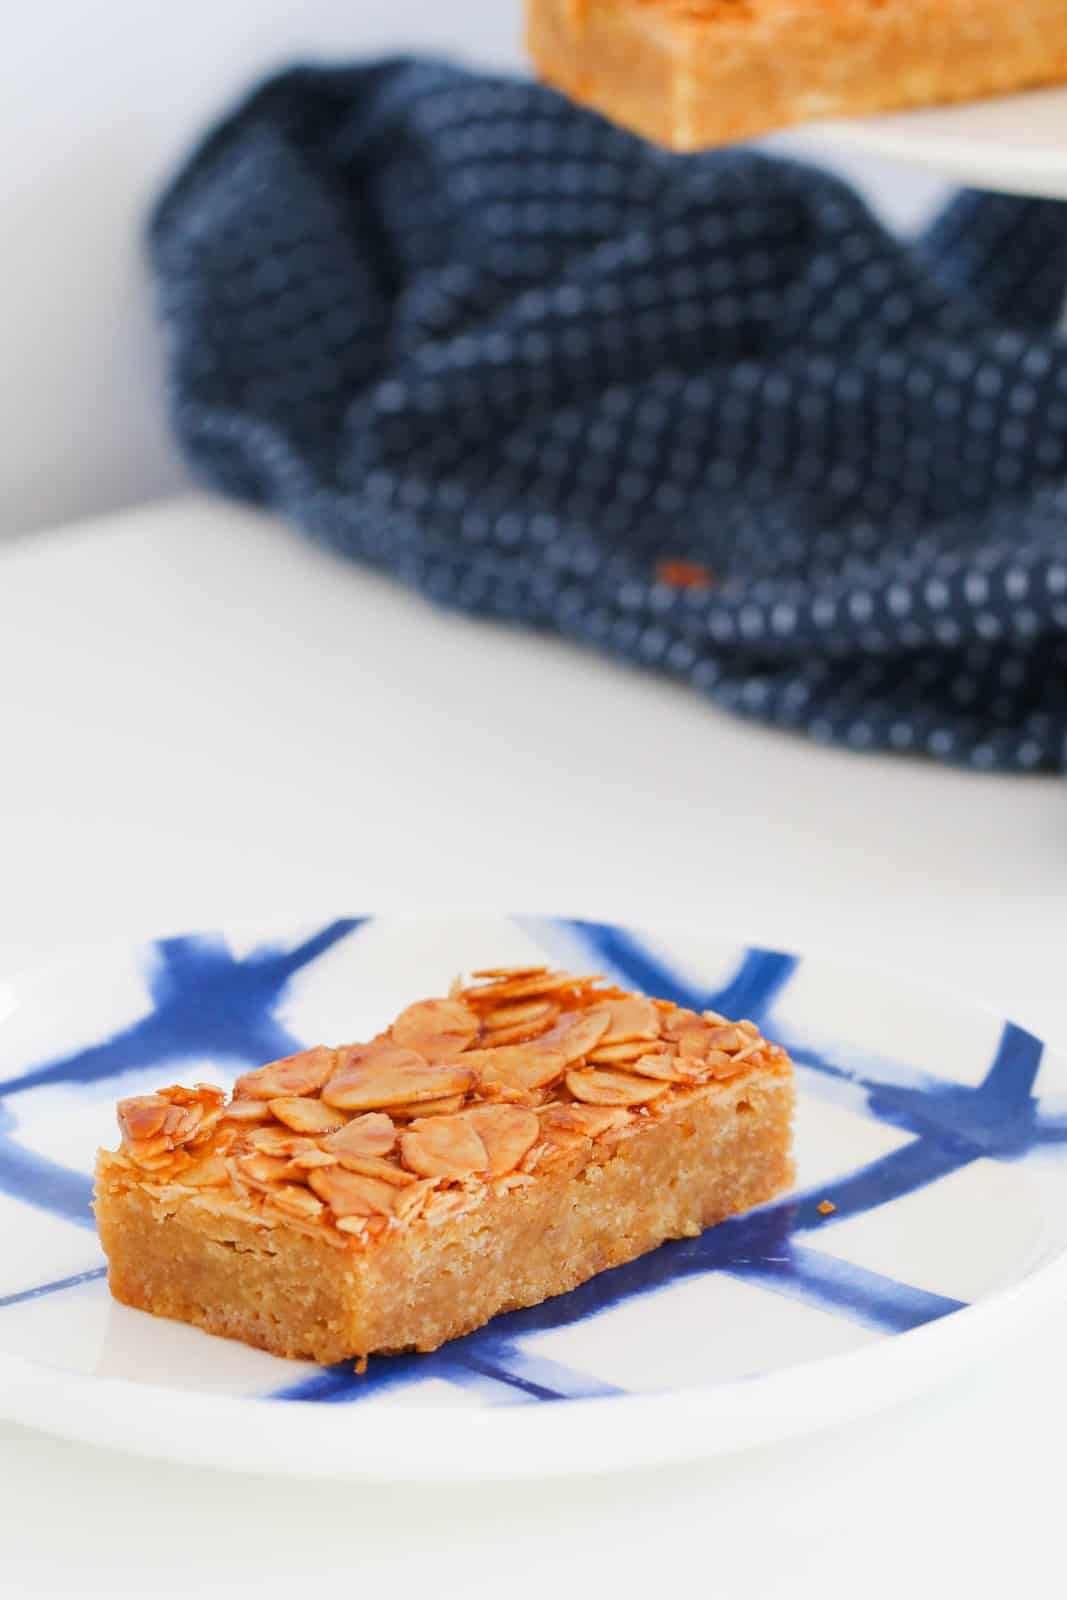 A piece of slice with flaked almonds on top, served on a blue and white plate